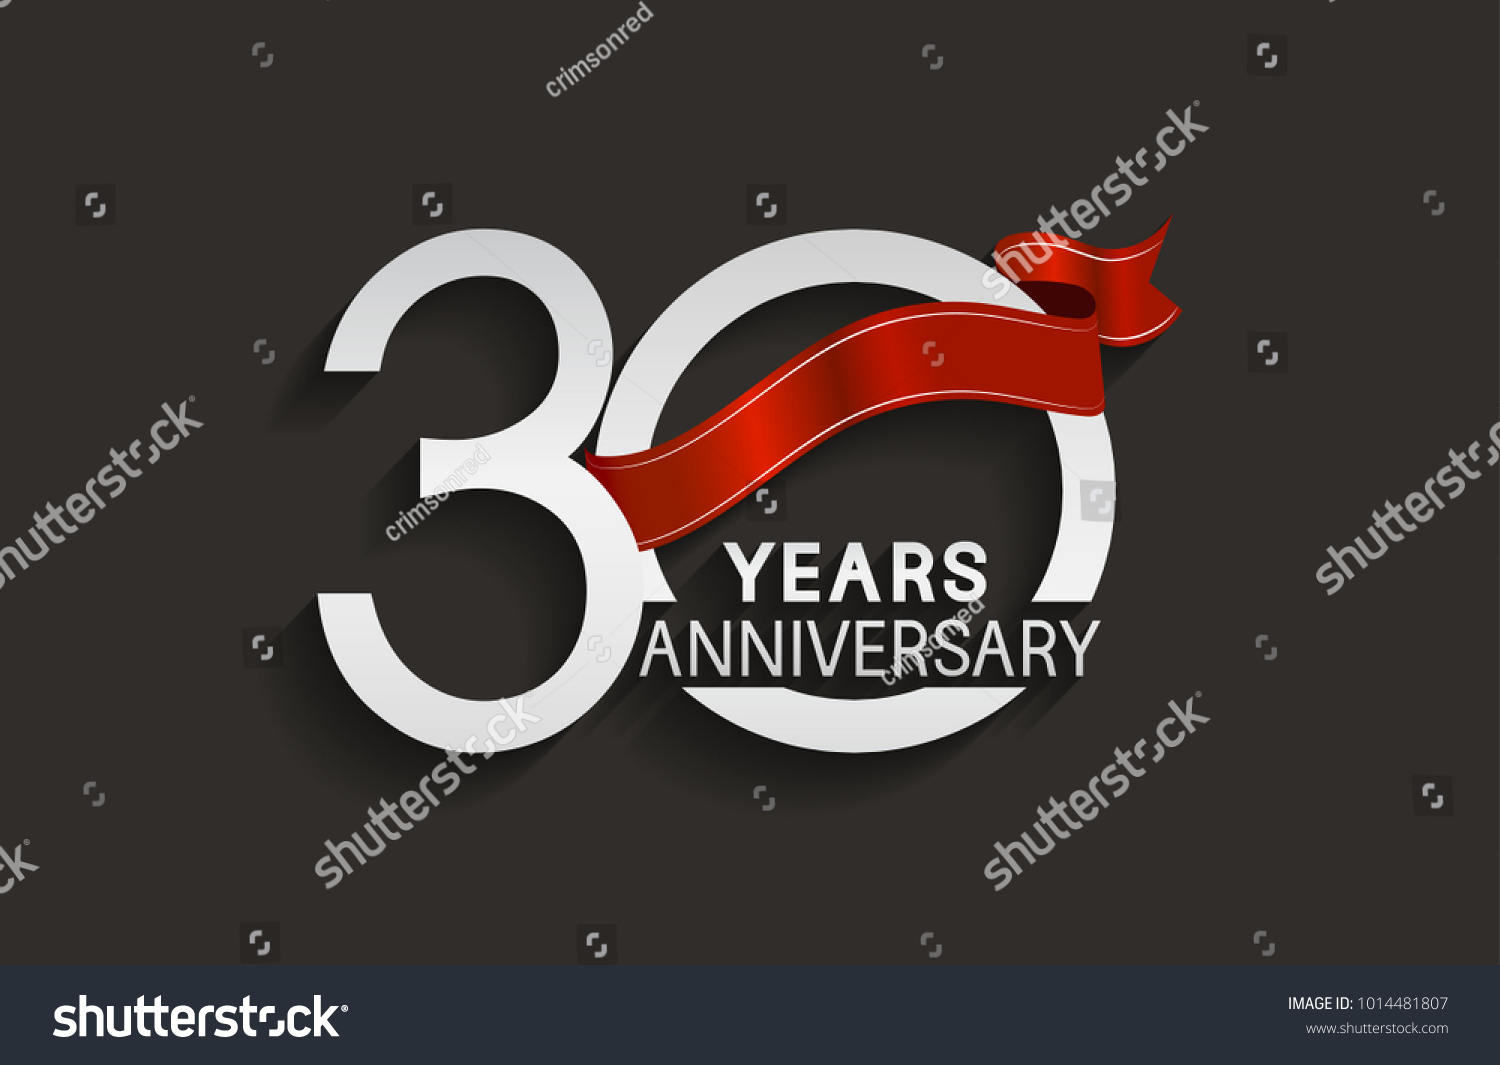 Years anniversary design silver color stock vector